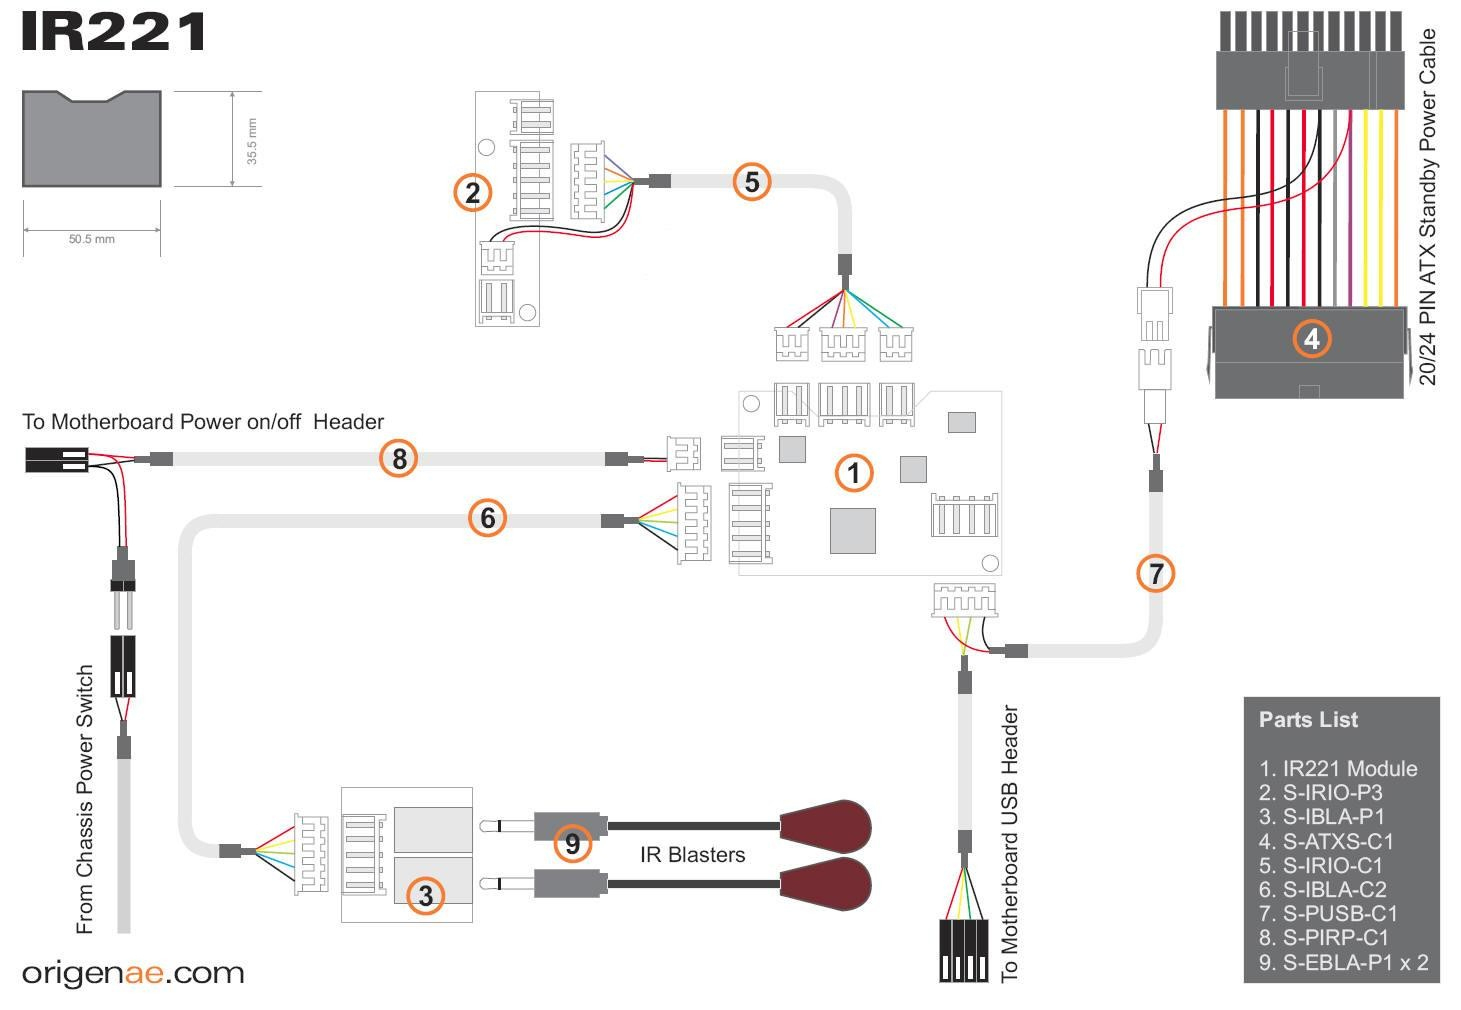 Usb Wiring Diagram 2 | Wiring Library - Sata Data Cable To Usb Wiring Diagram